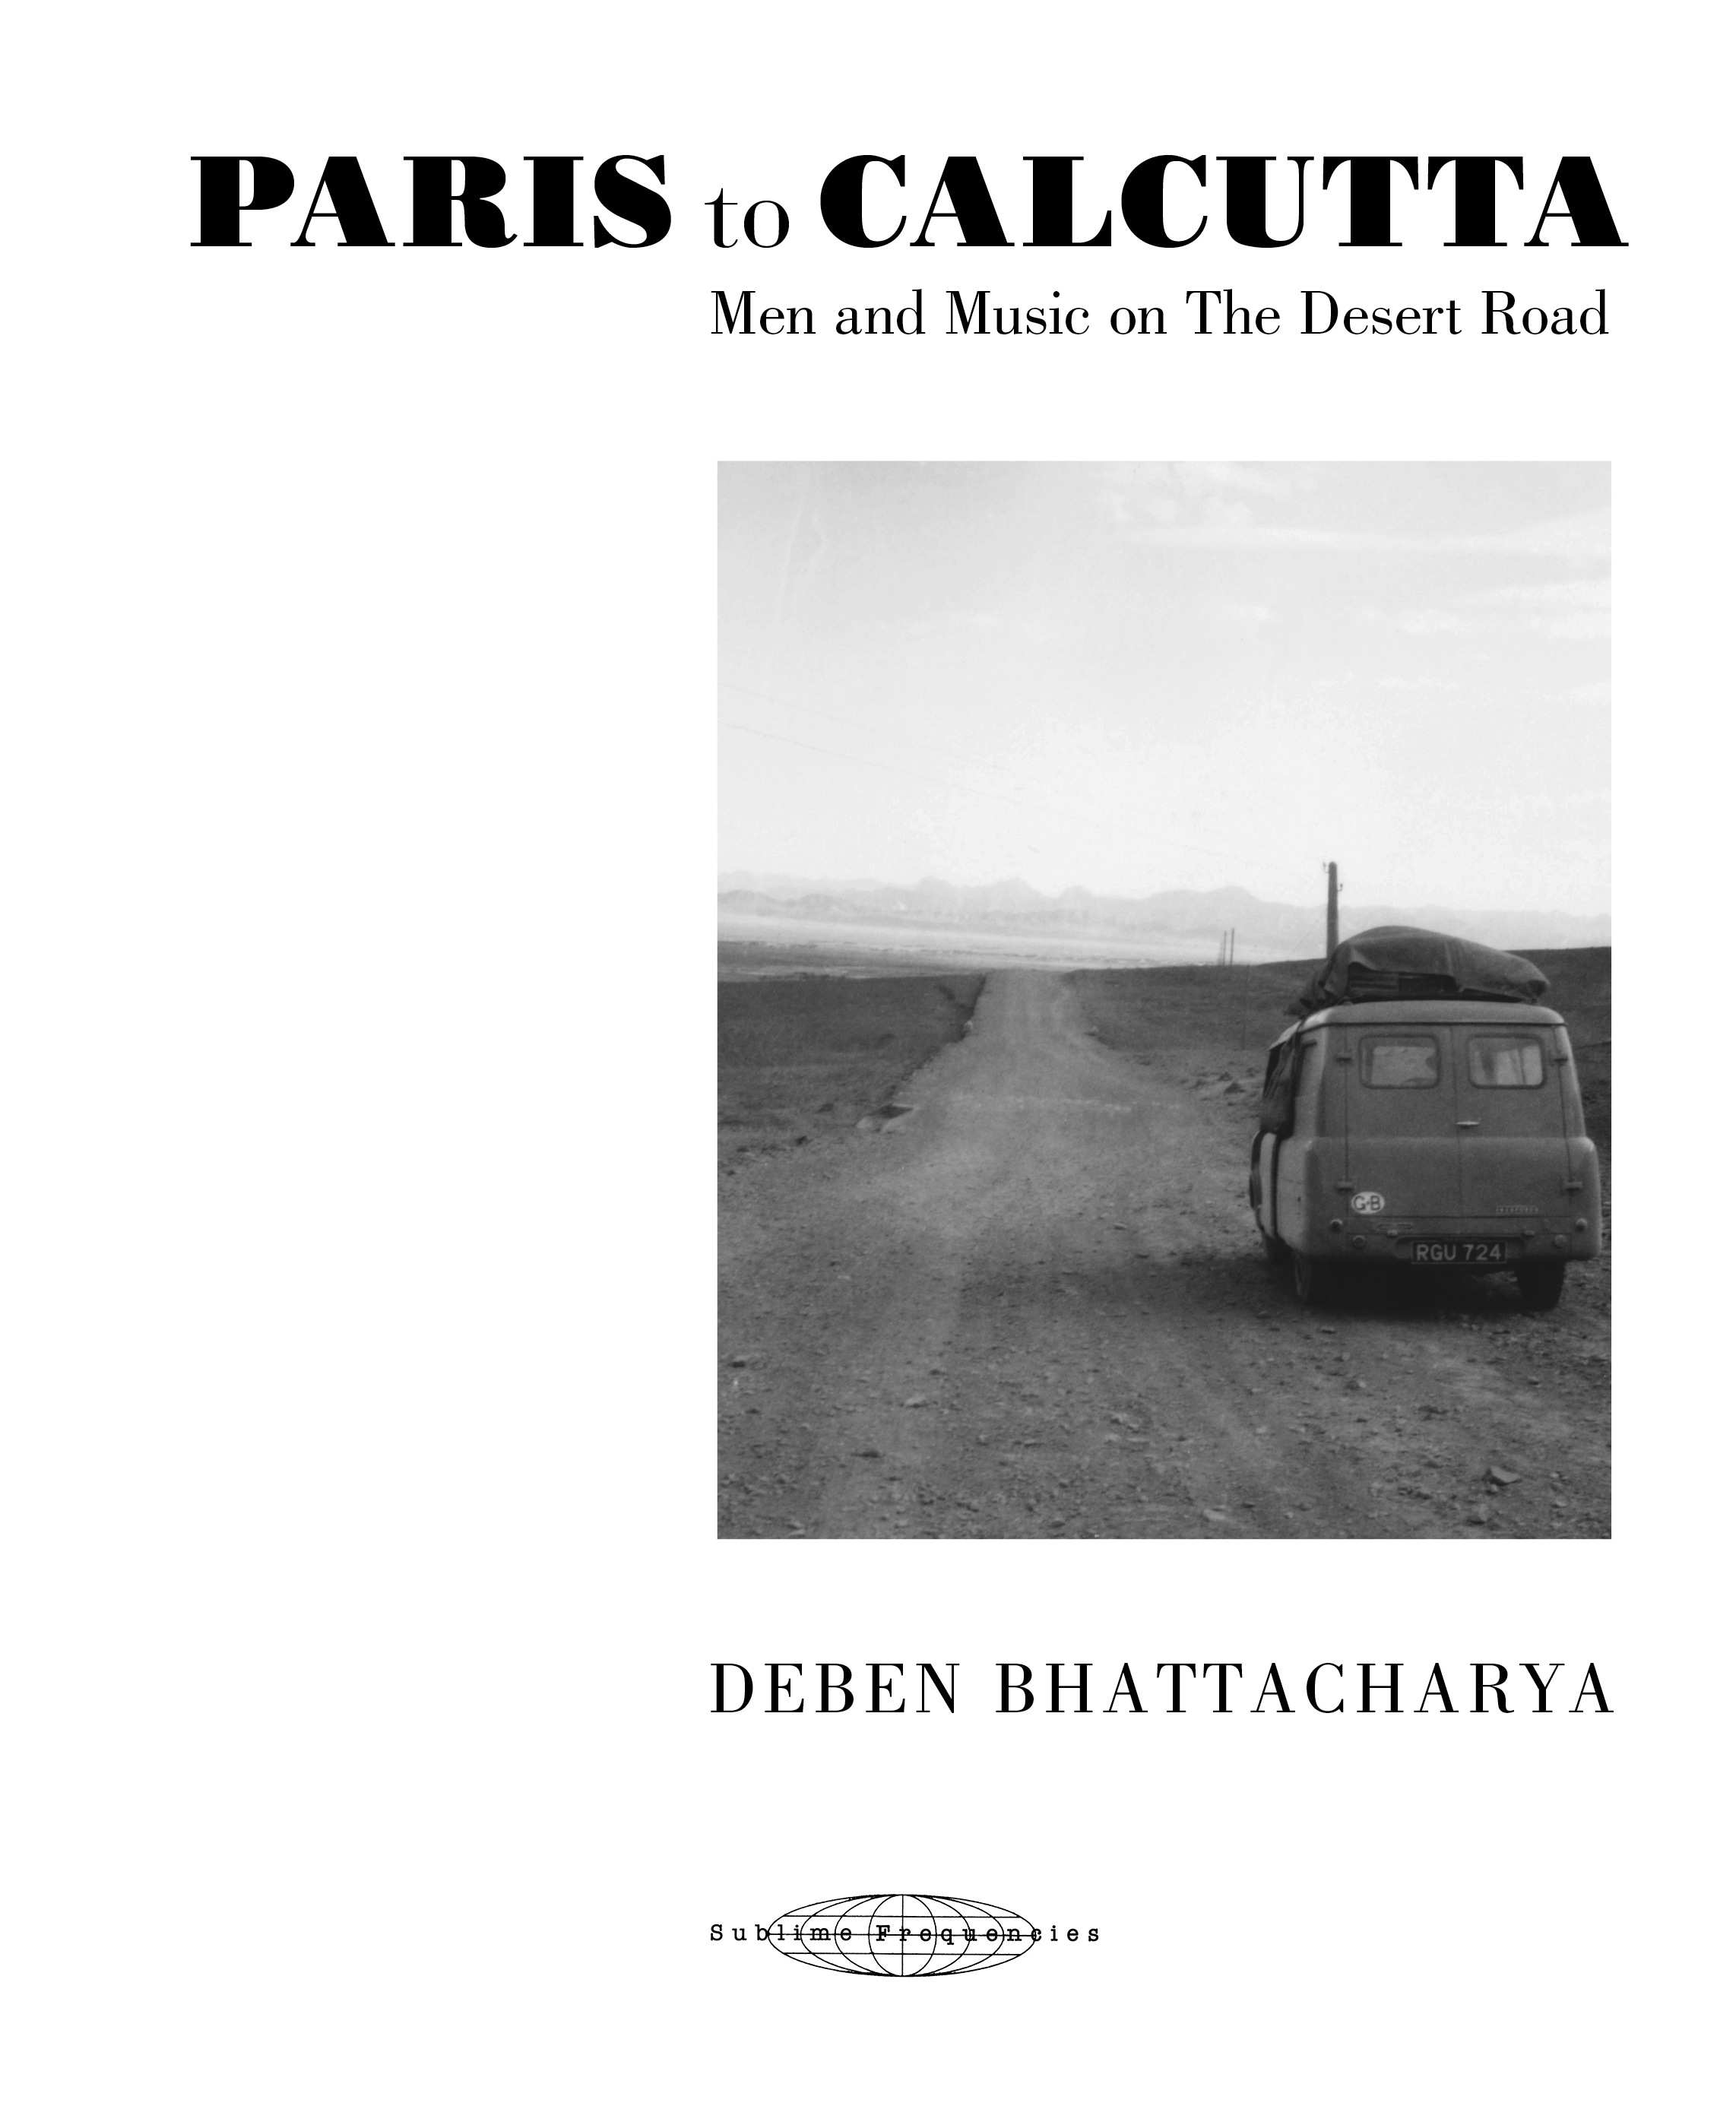 Deben Bhattacharya- PARIS to CALCUTTA - Men and Music on The Desert Road